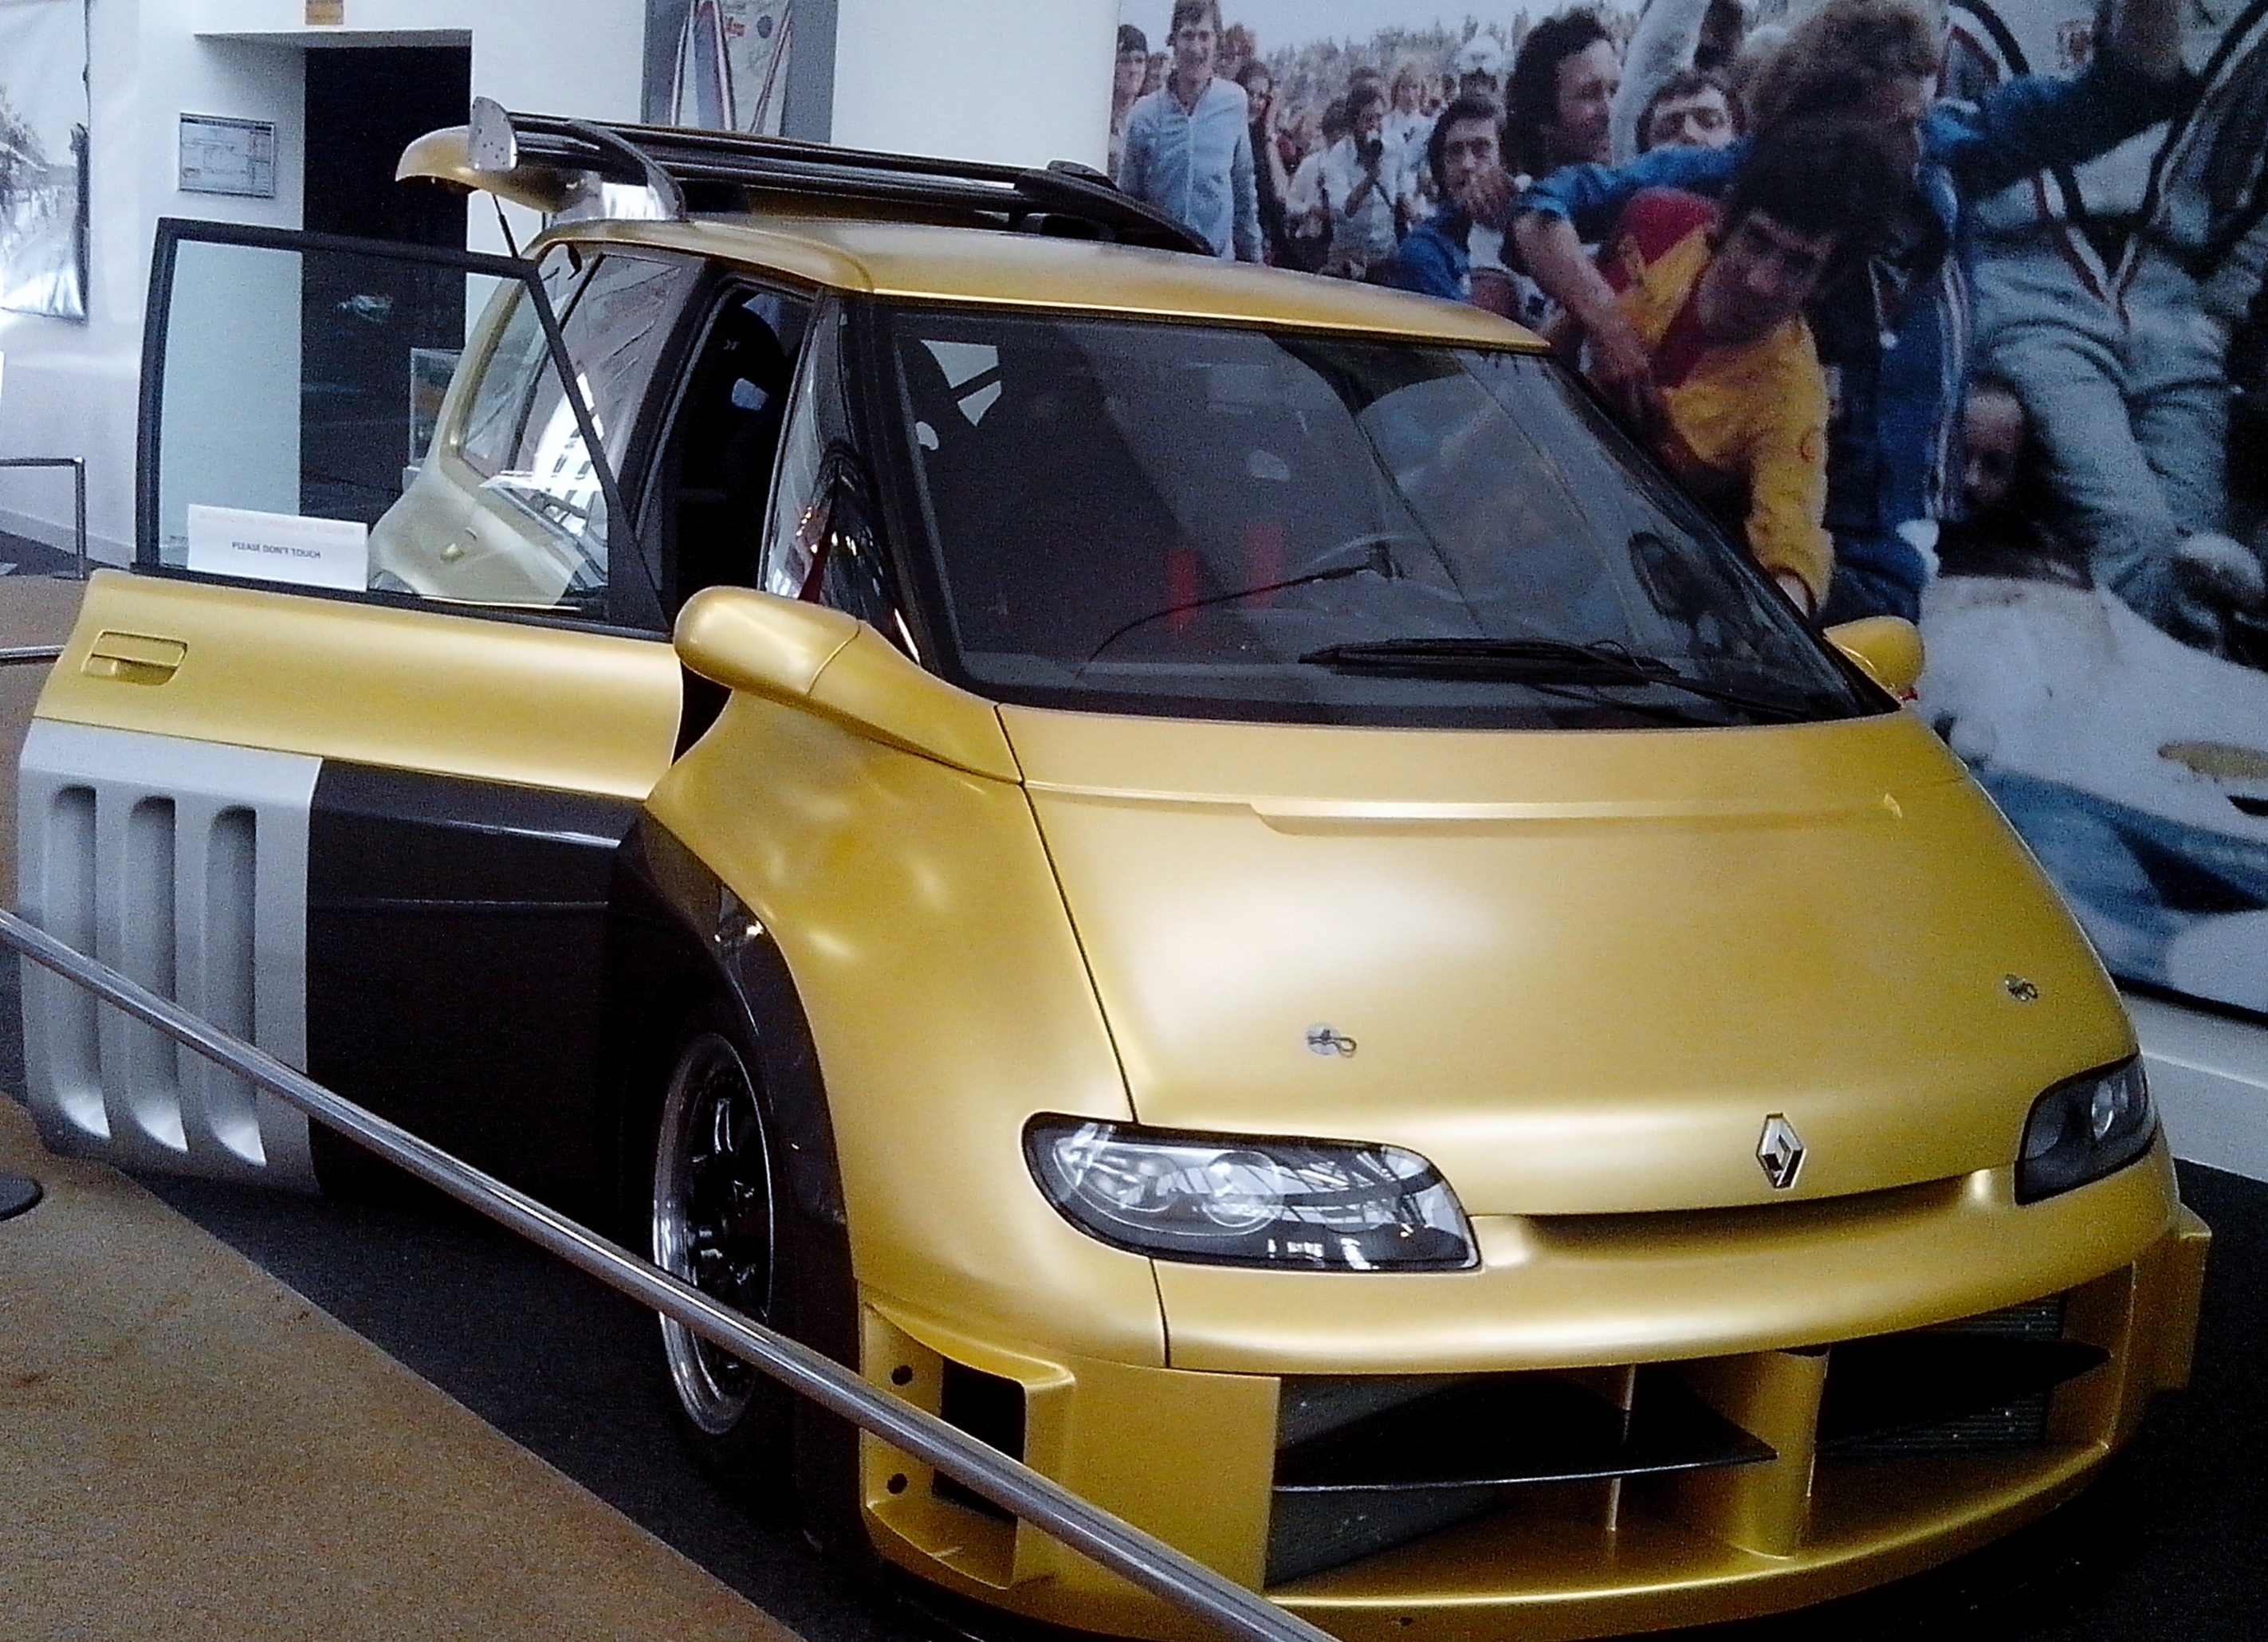 file renault espace f1 wikimedia commons. Black Bedroom Furniture Sets. Home Design Ideas